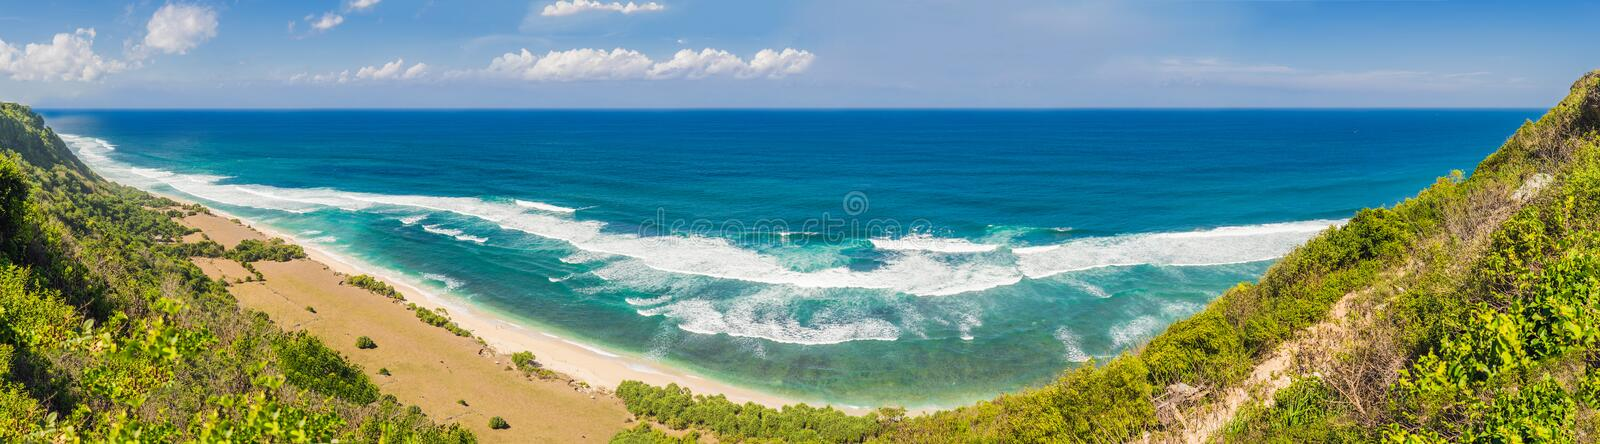 Top aerial view of beauty Bali beach. Empty paradise beach, blue sea waves in Bali island, Indonesia. Suluban and Nyang. Nyang place stock photography